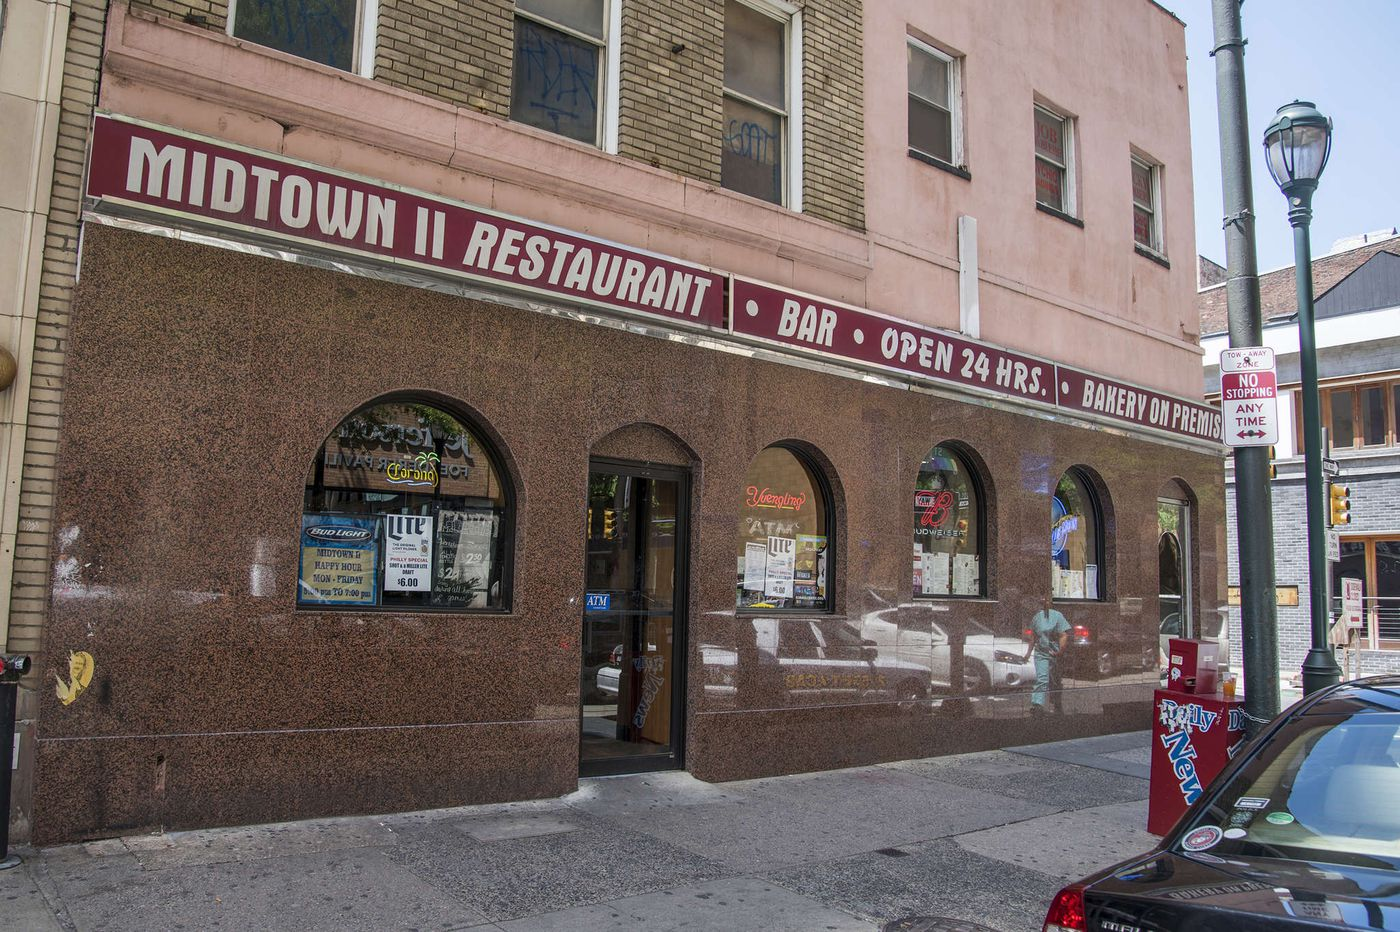 Greek restaurant to open in a new hotel replacing the Midtown II Diner